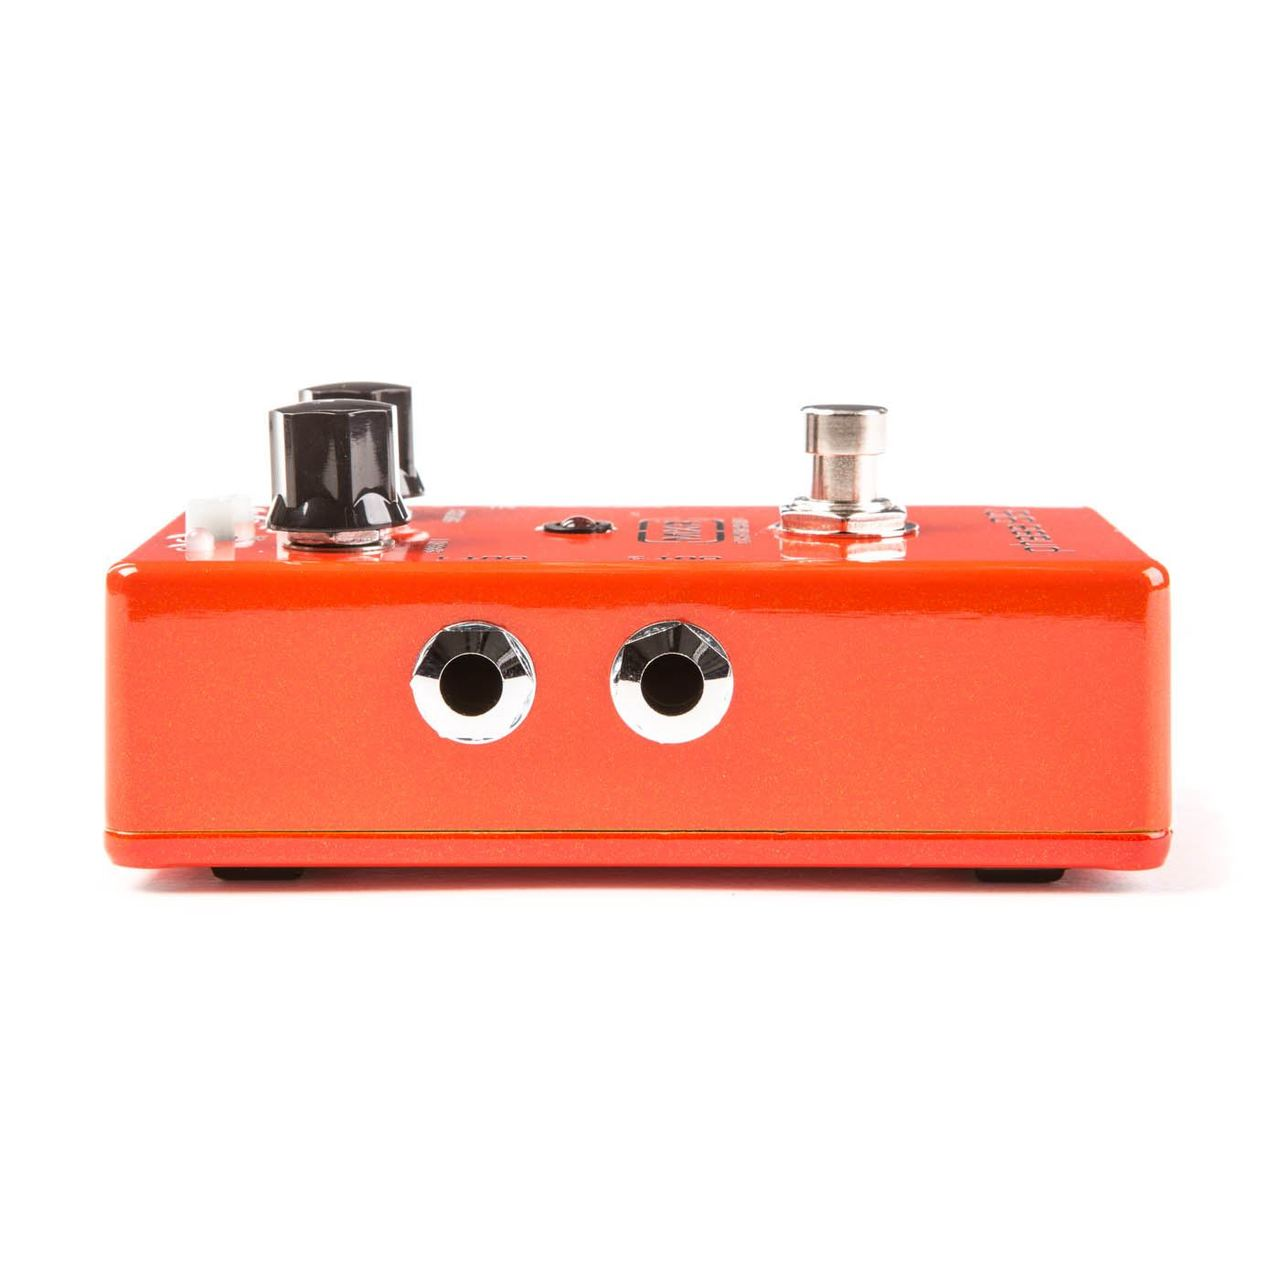 MXR Custom Shop CSP099 Phase 99 pedal